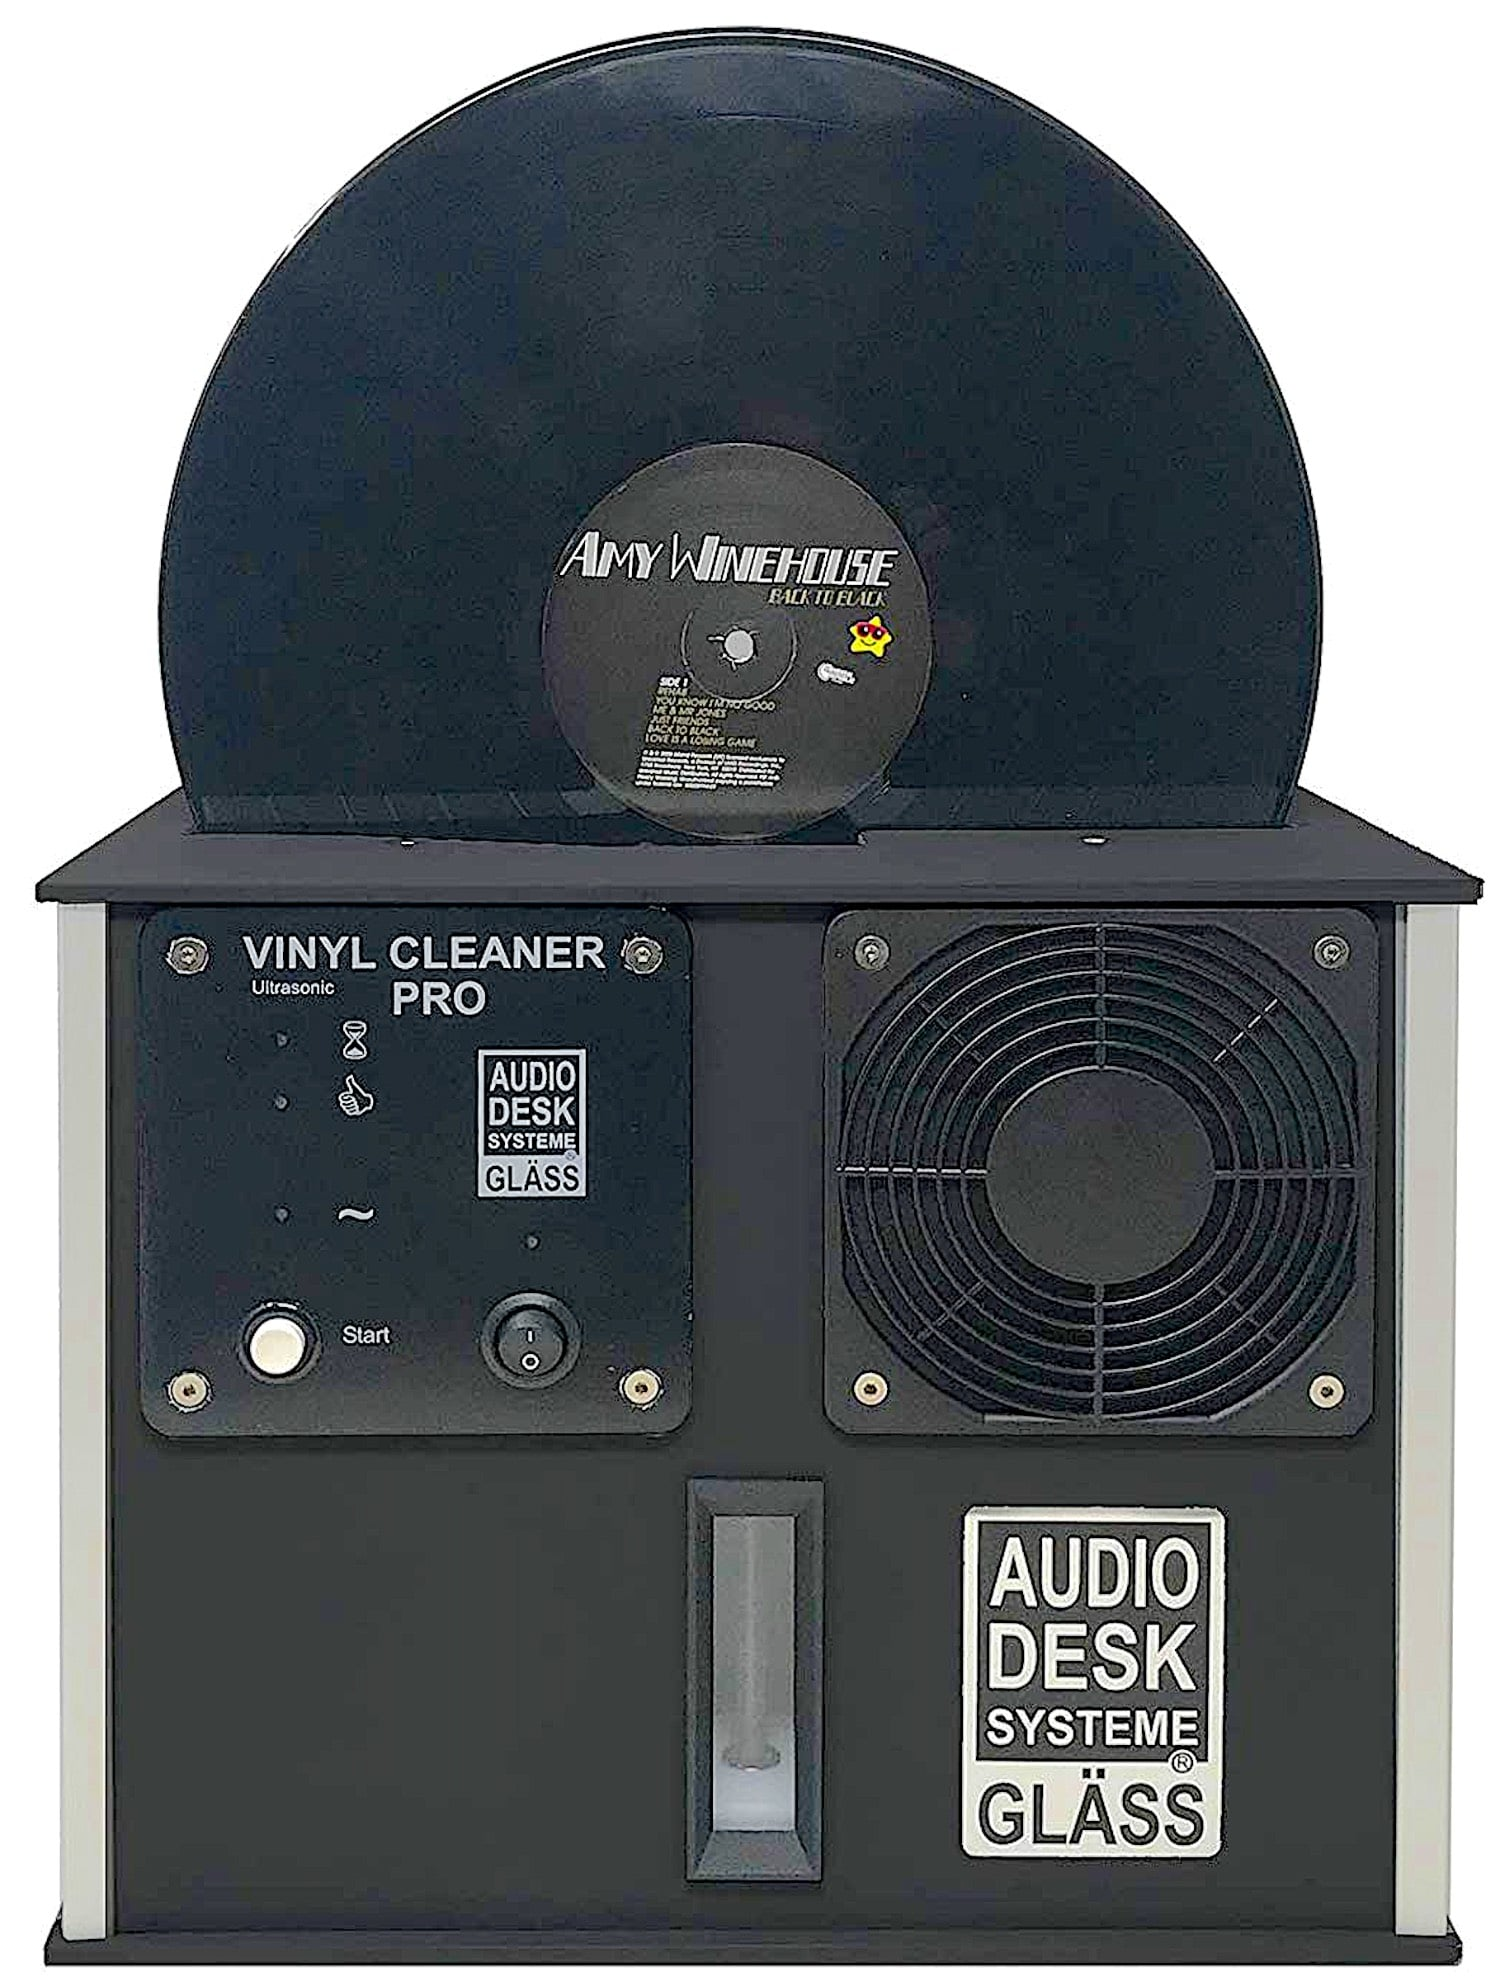 Pro 2019 Vinyl Cleaner Pro From Audio Desk - The Audiophile Man